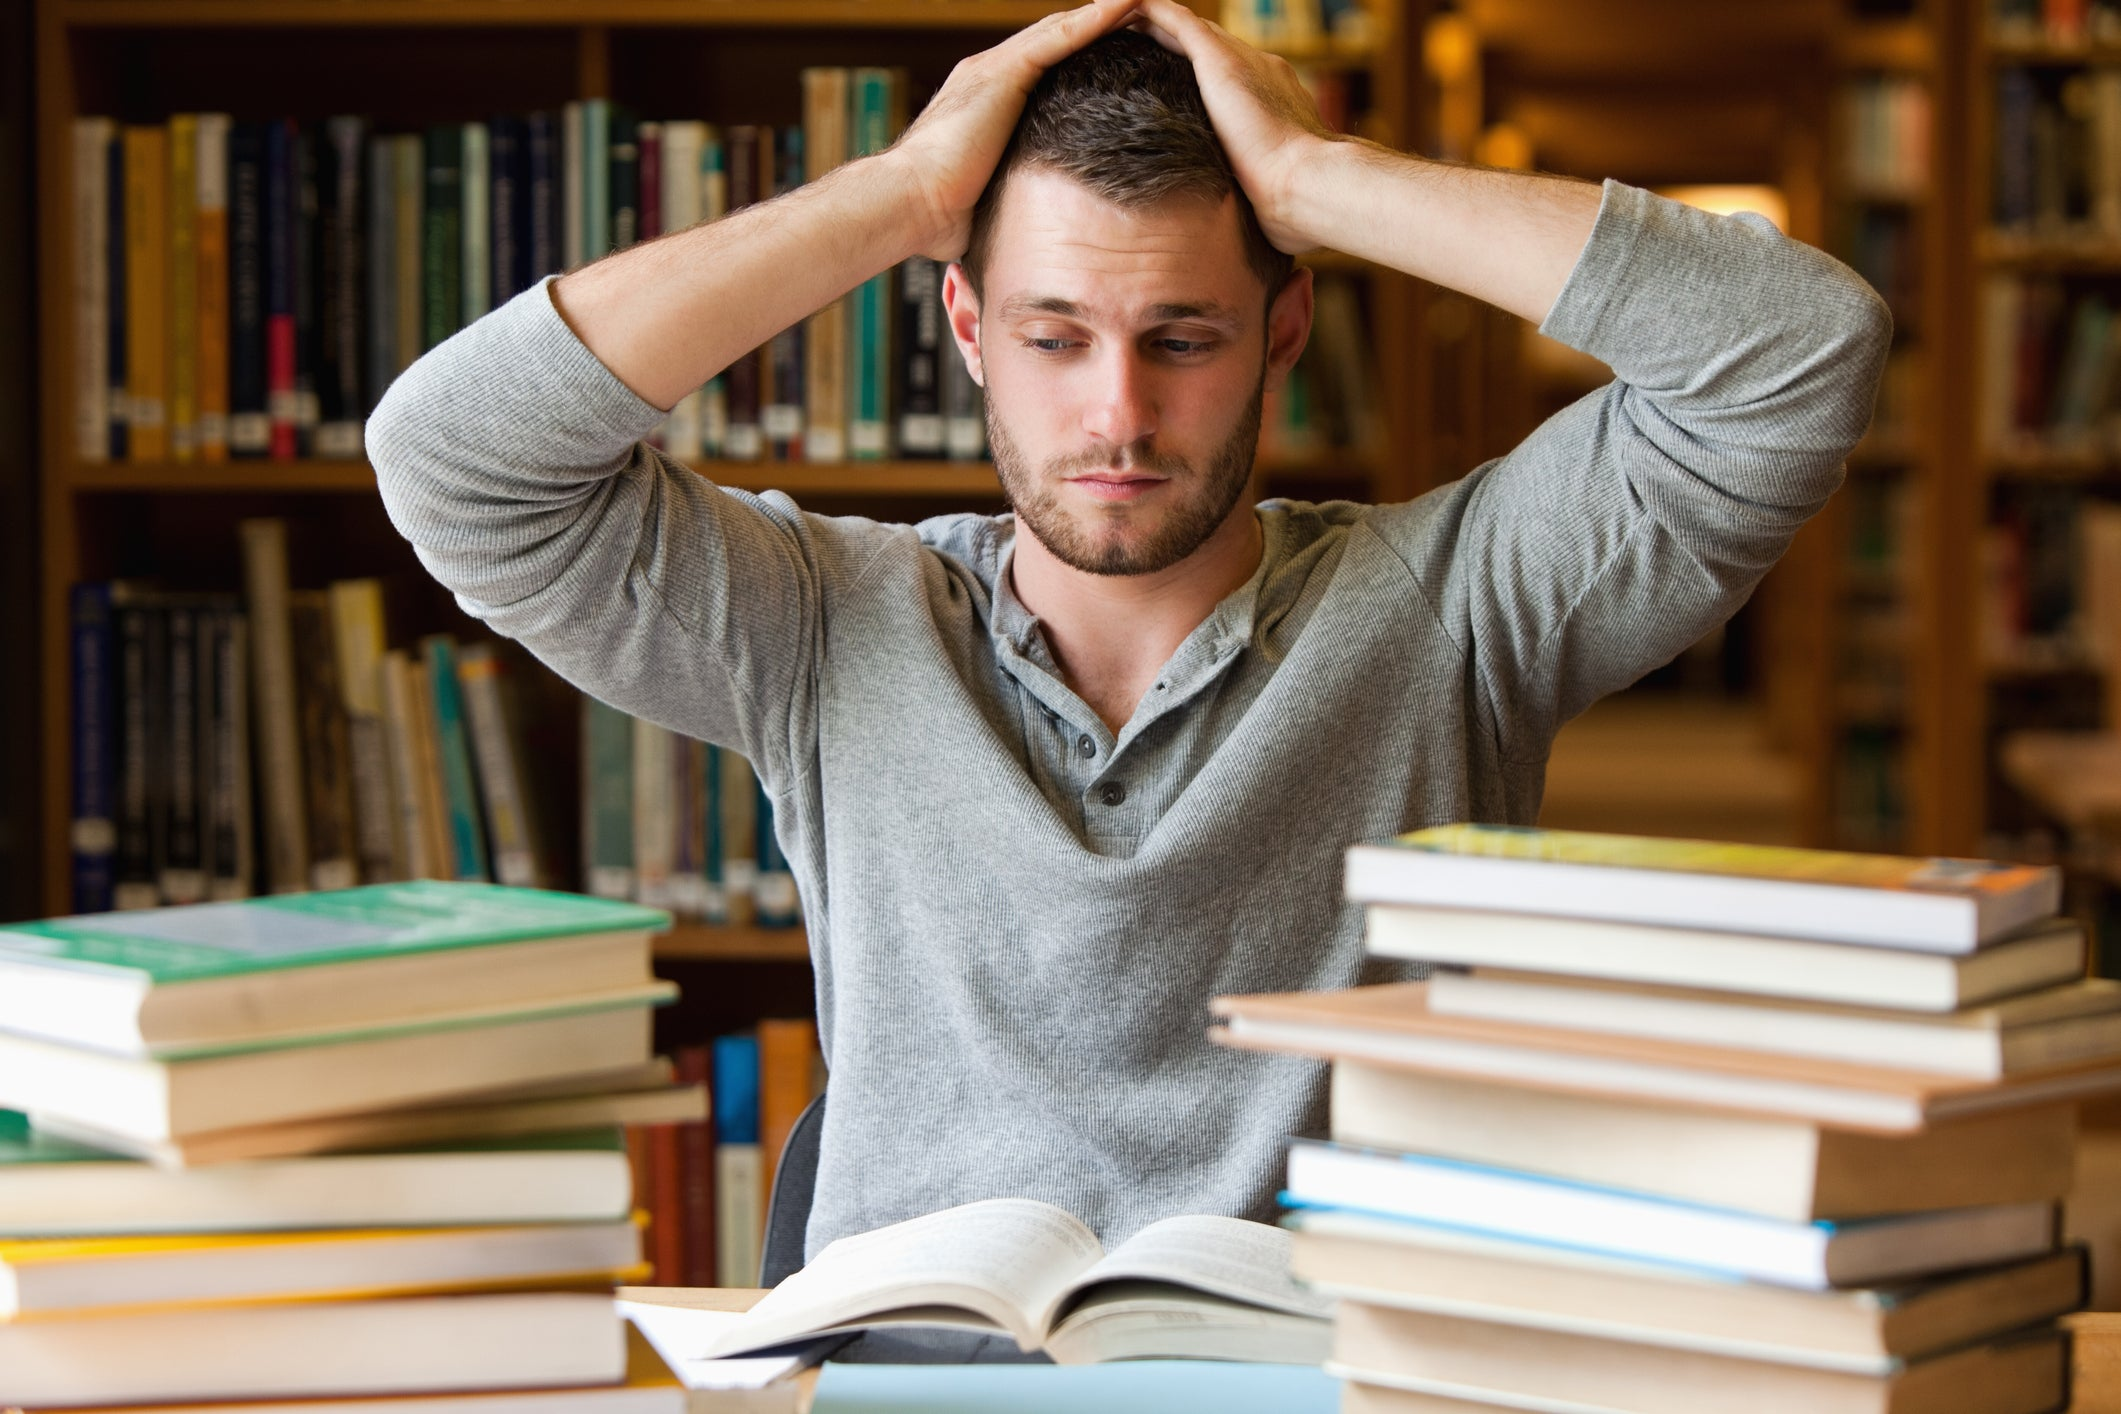 A stressed male college student with a stack of books in the library.